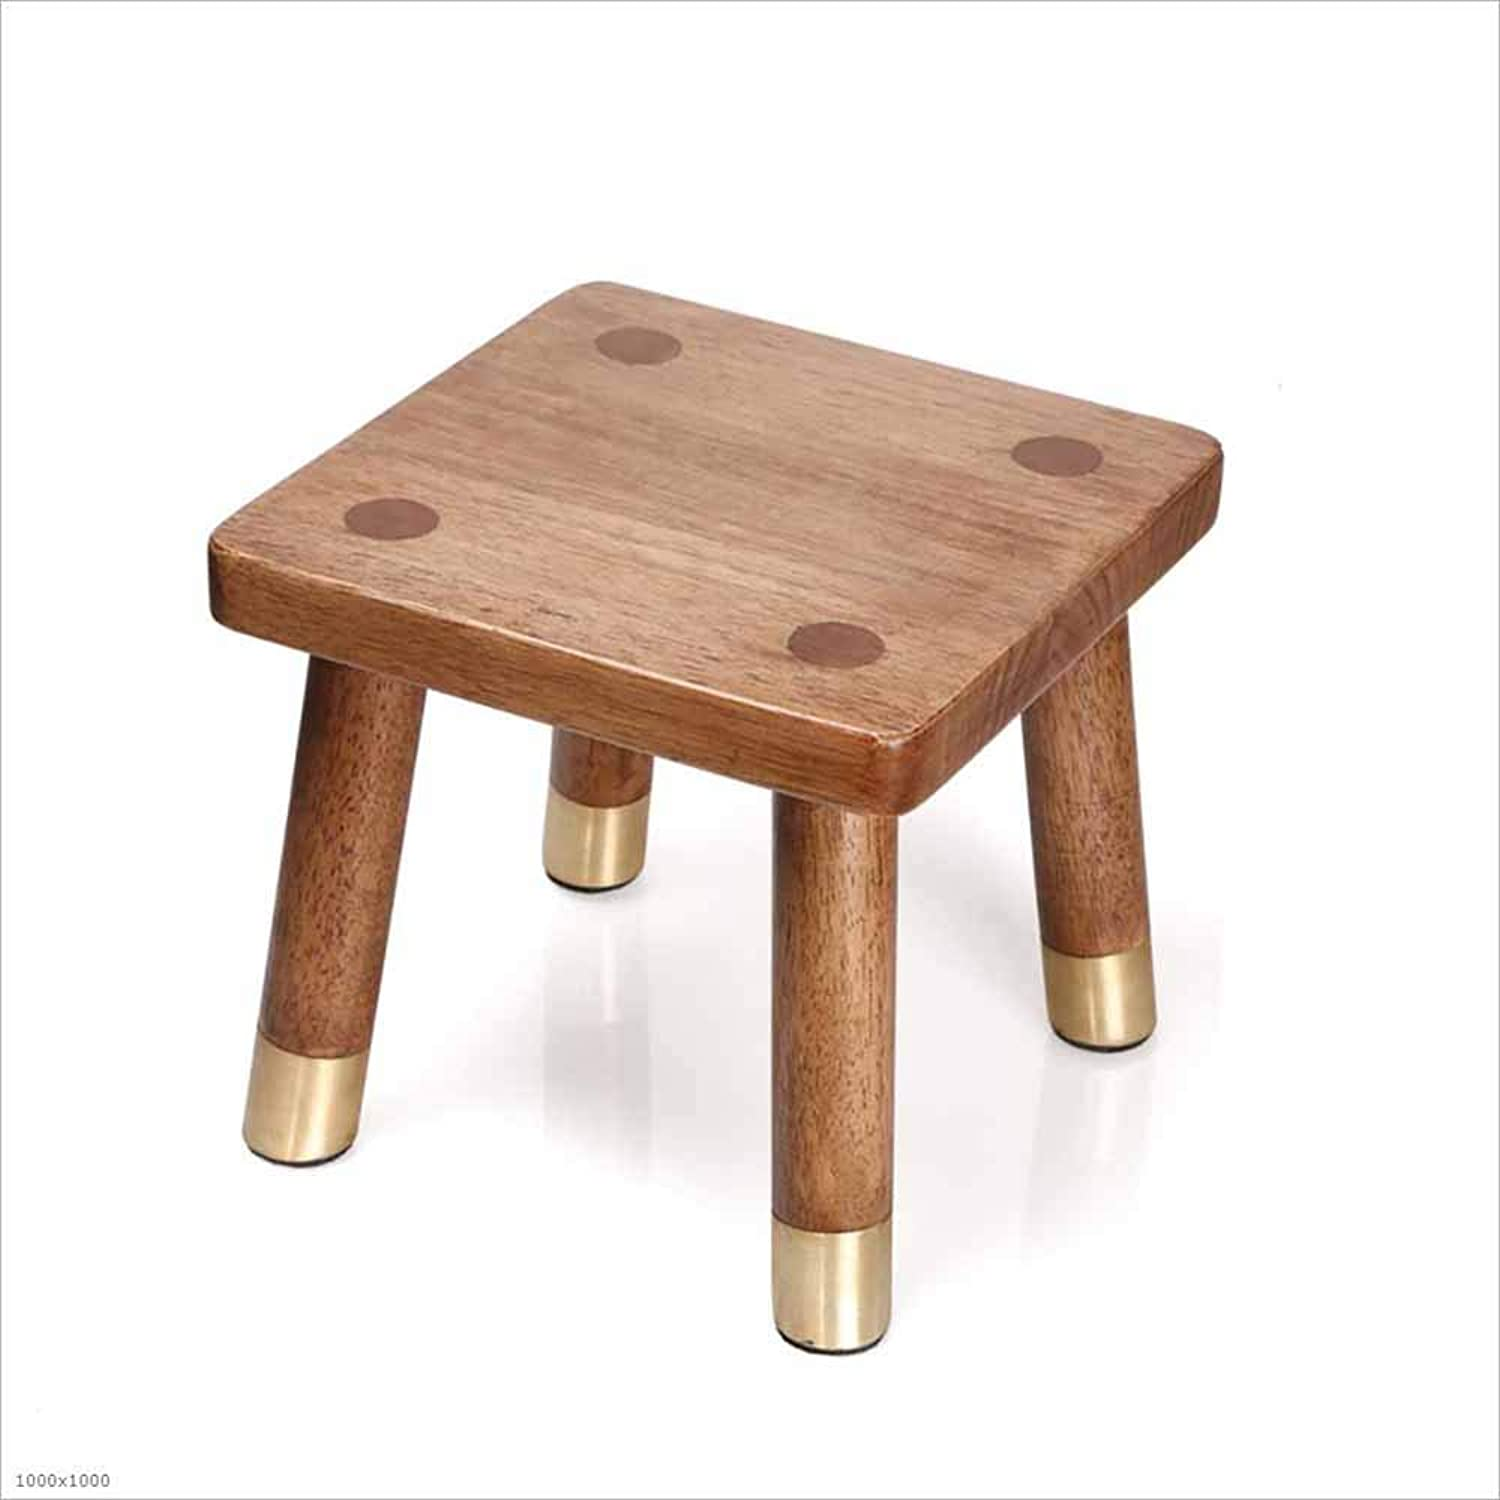 Solid Wood Stool Retro shoes Bench Rubber Wood Living Room Hall Bathroom Footstool